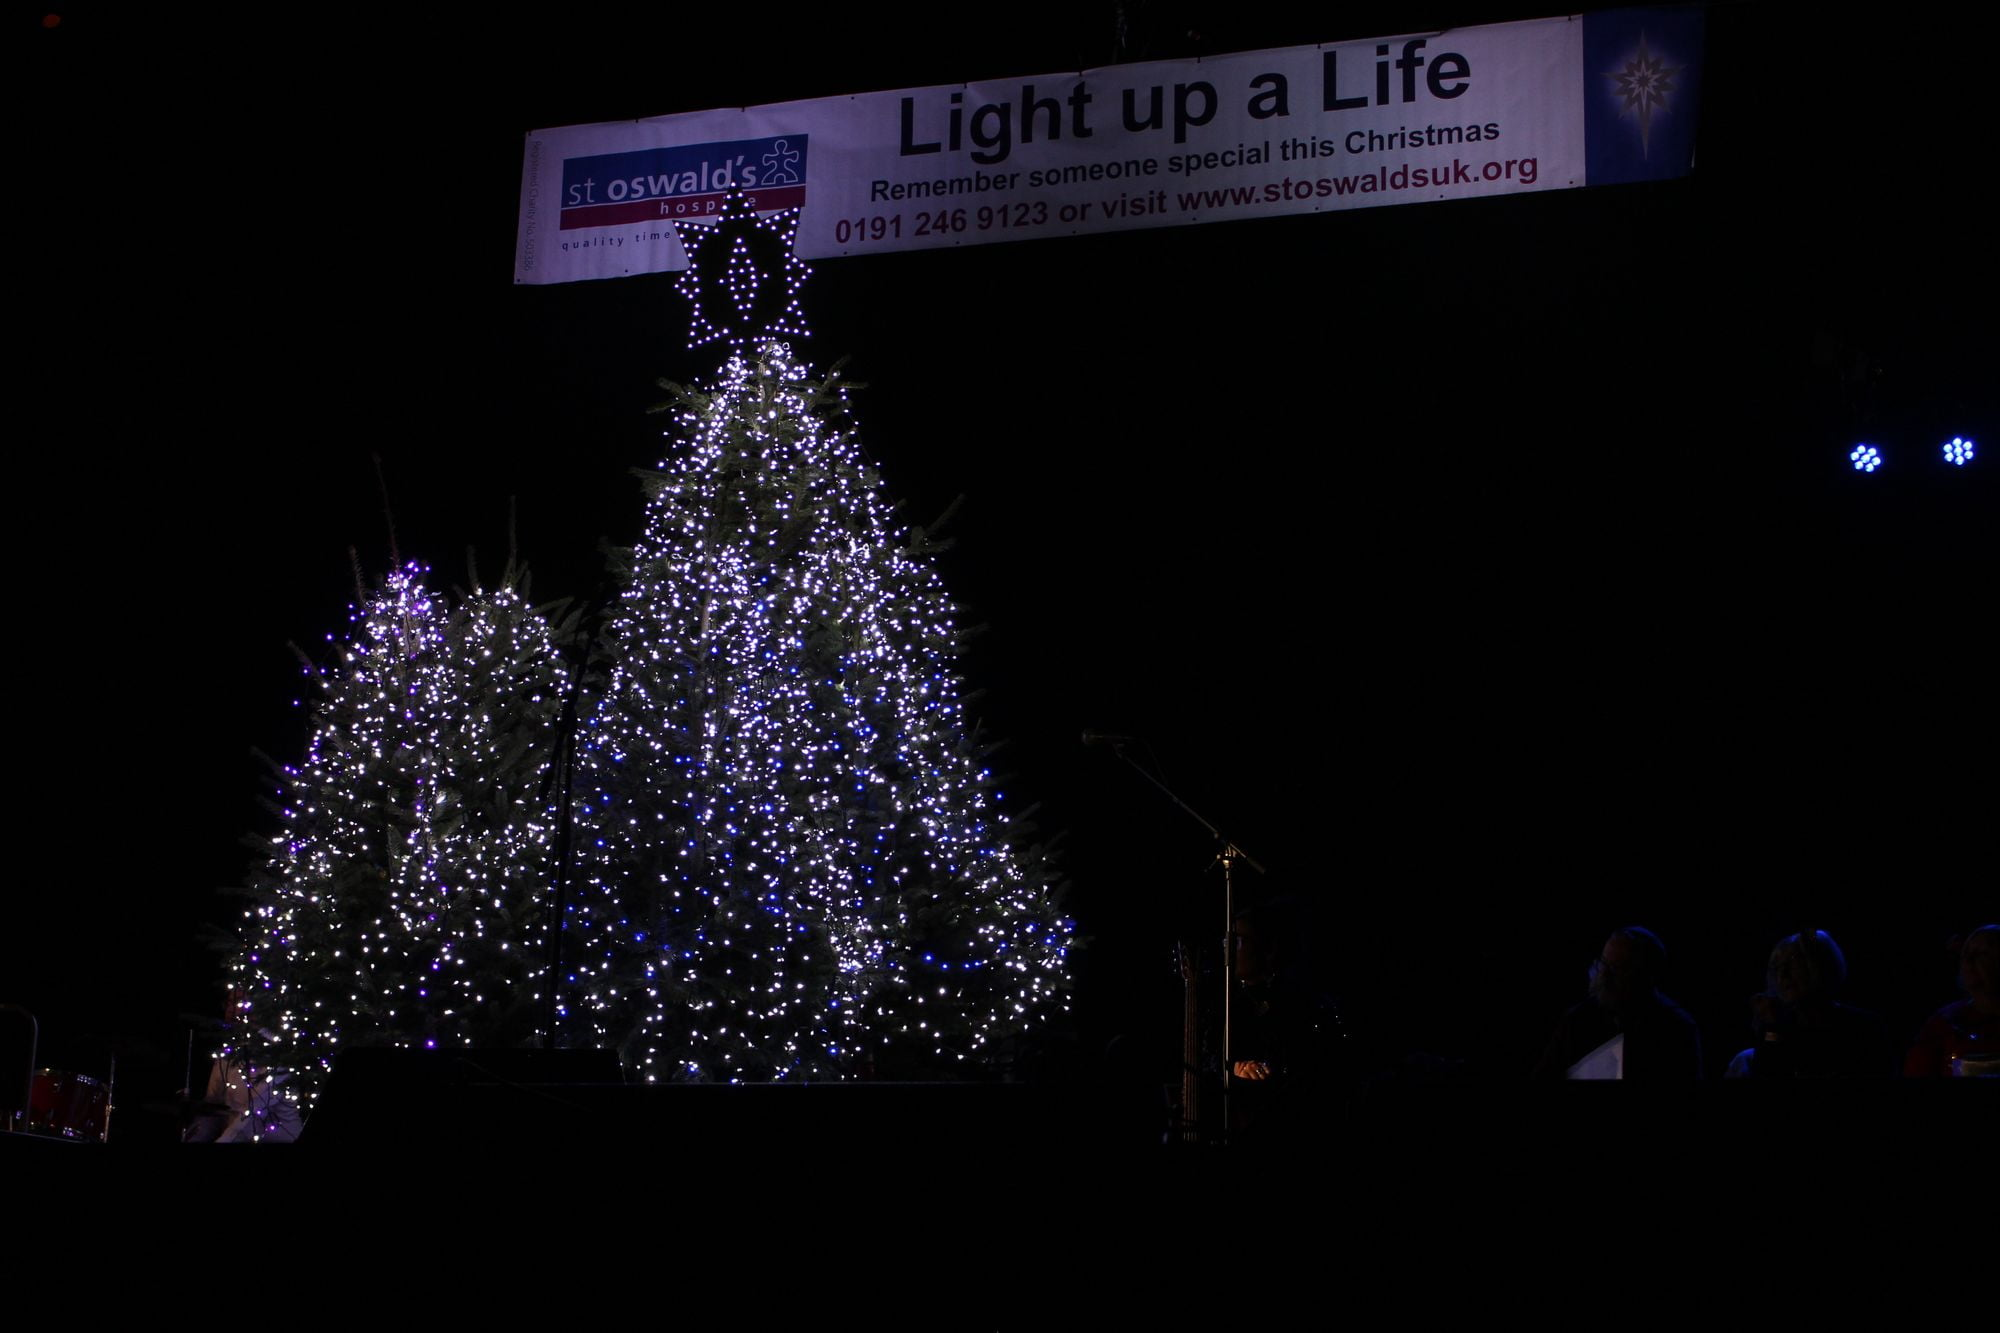 Turps Film helps St Oswald's Hospice to make their Light up a Life ceremony virtual